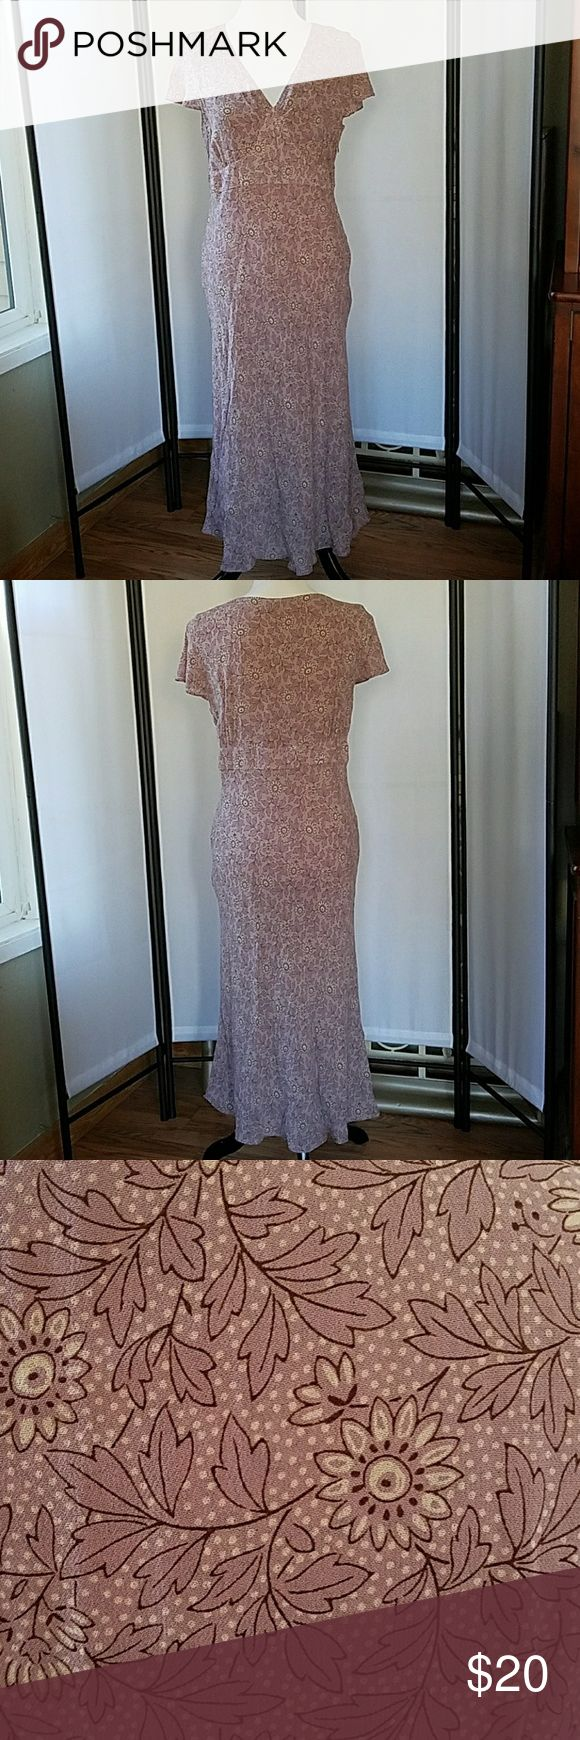 Beautiful Boden dress Beautiful dress in excellent used condition. Boden Dresses Midi